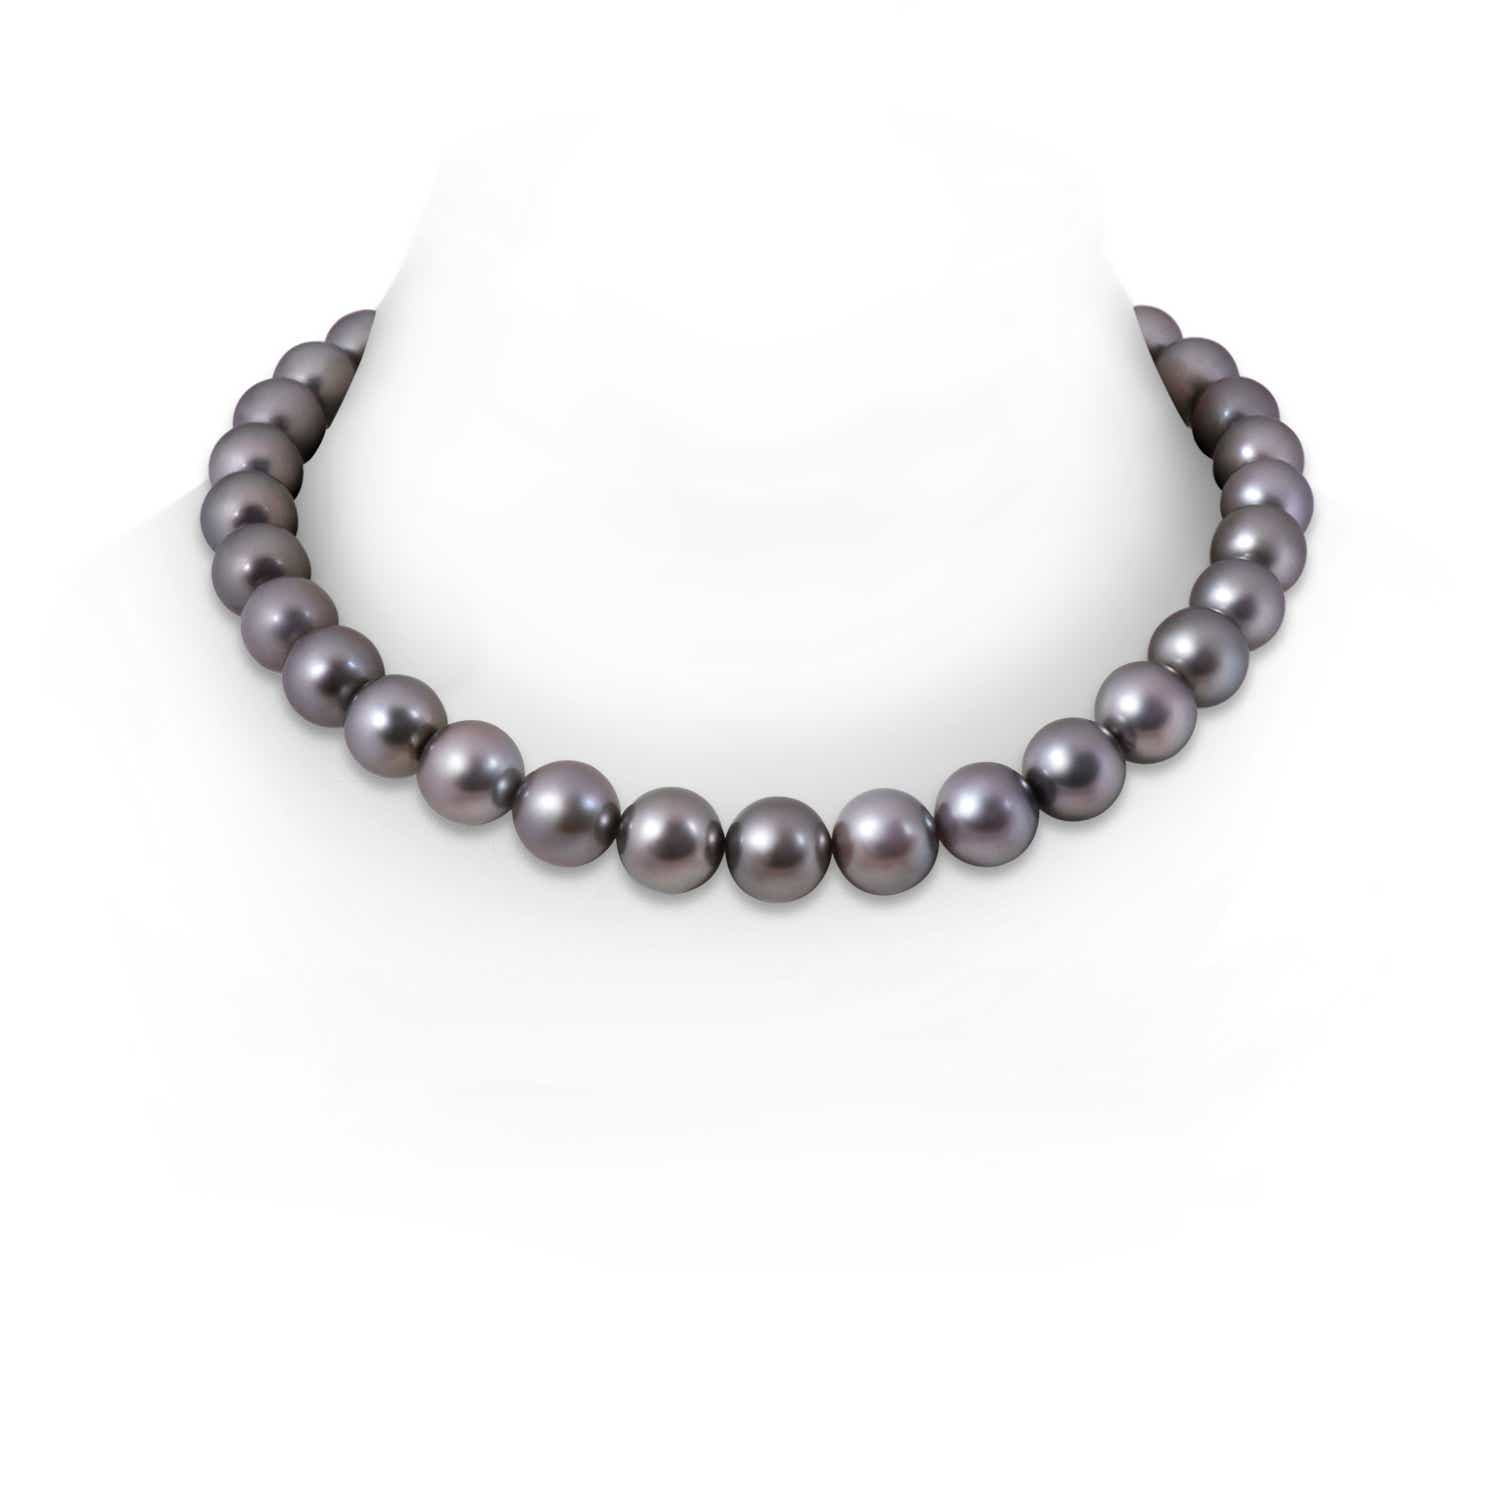 11 12mm, 16 Tahitian Cultured Pearl Choker Necklace